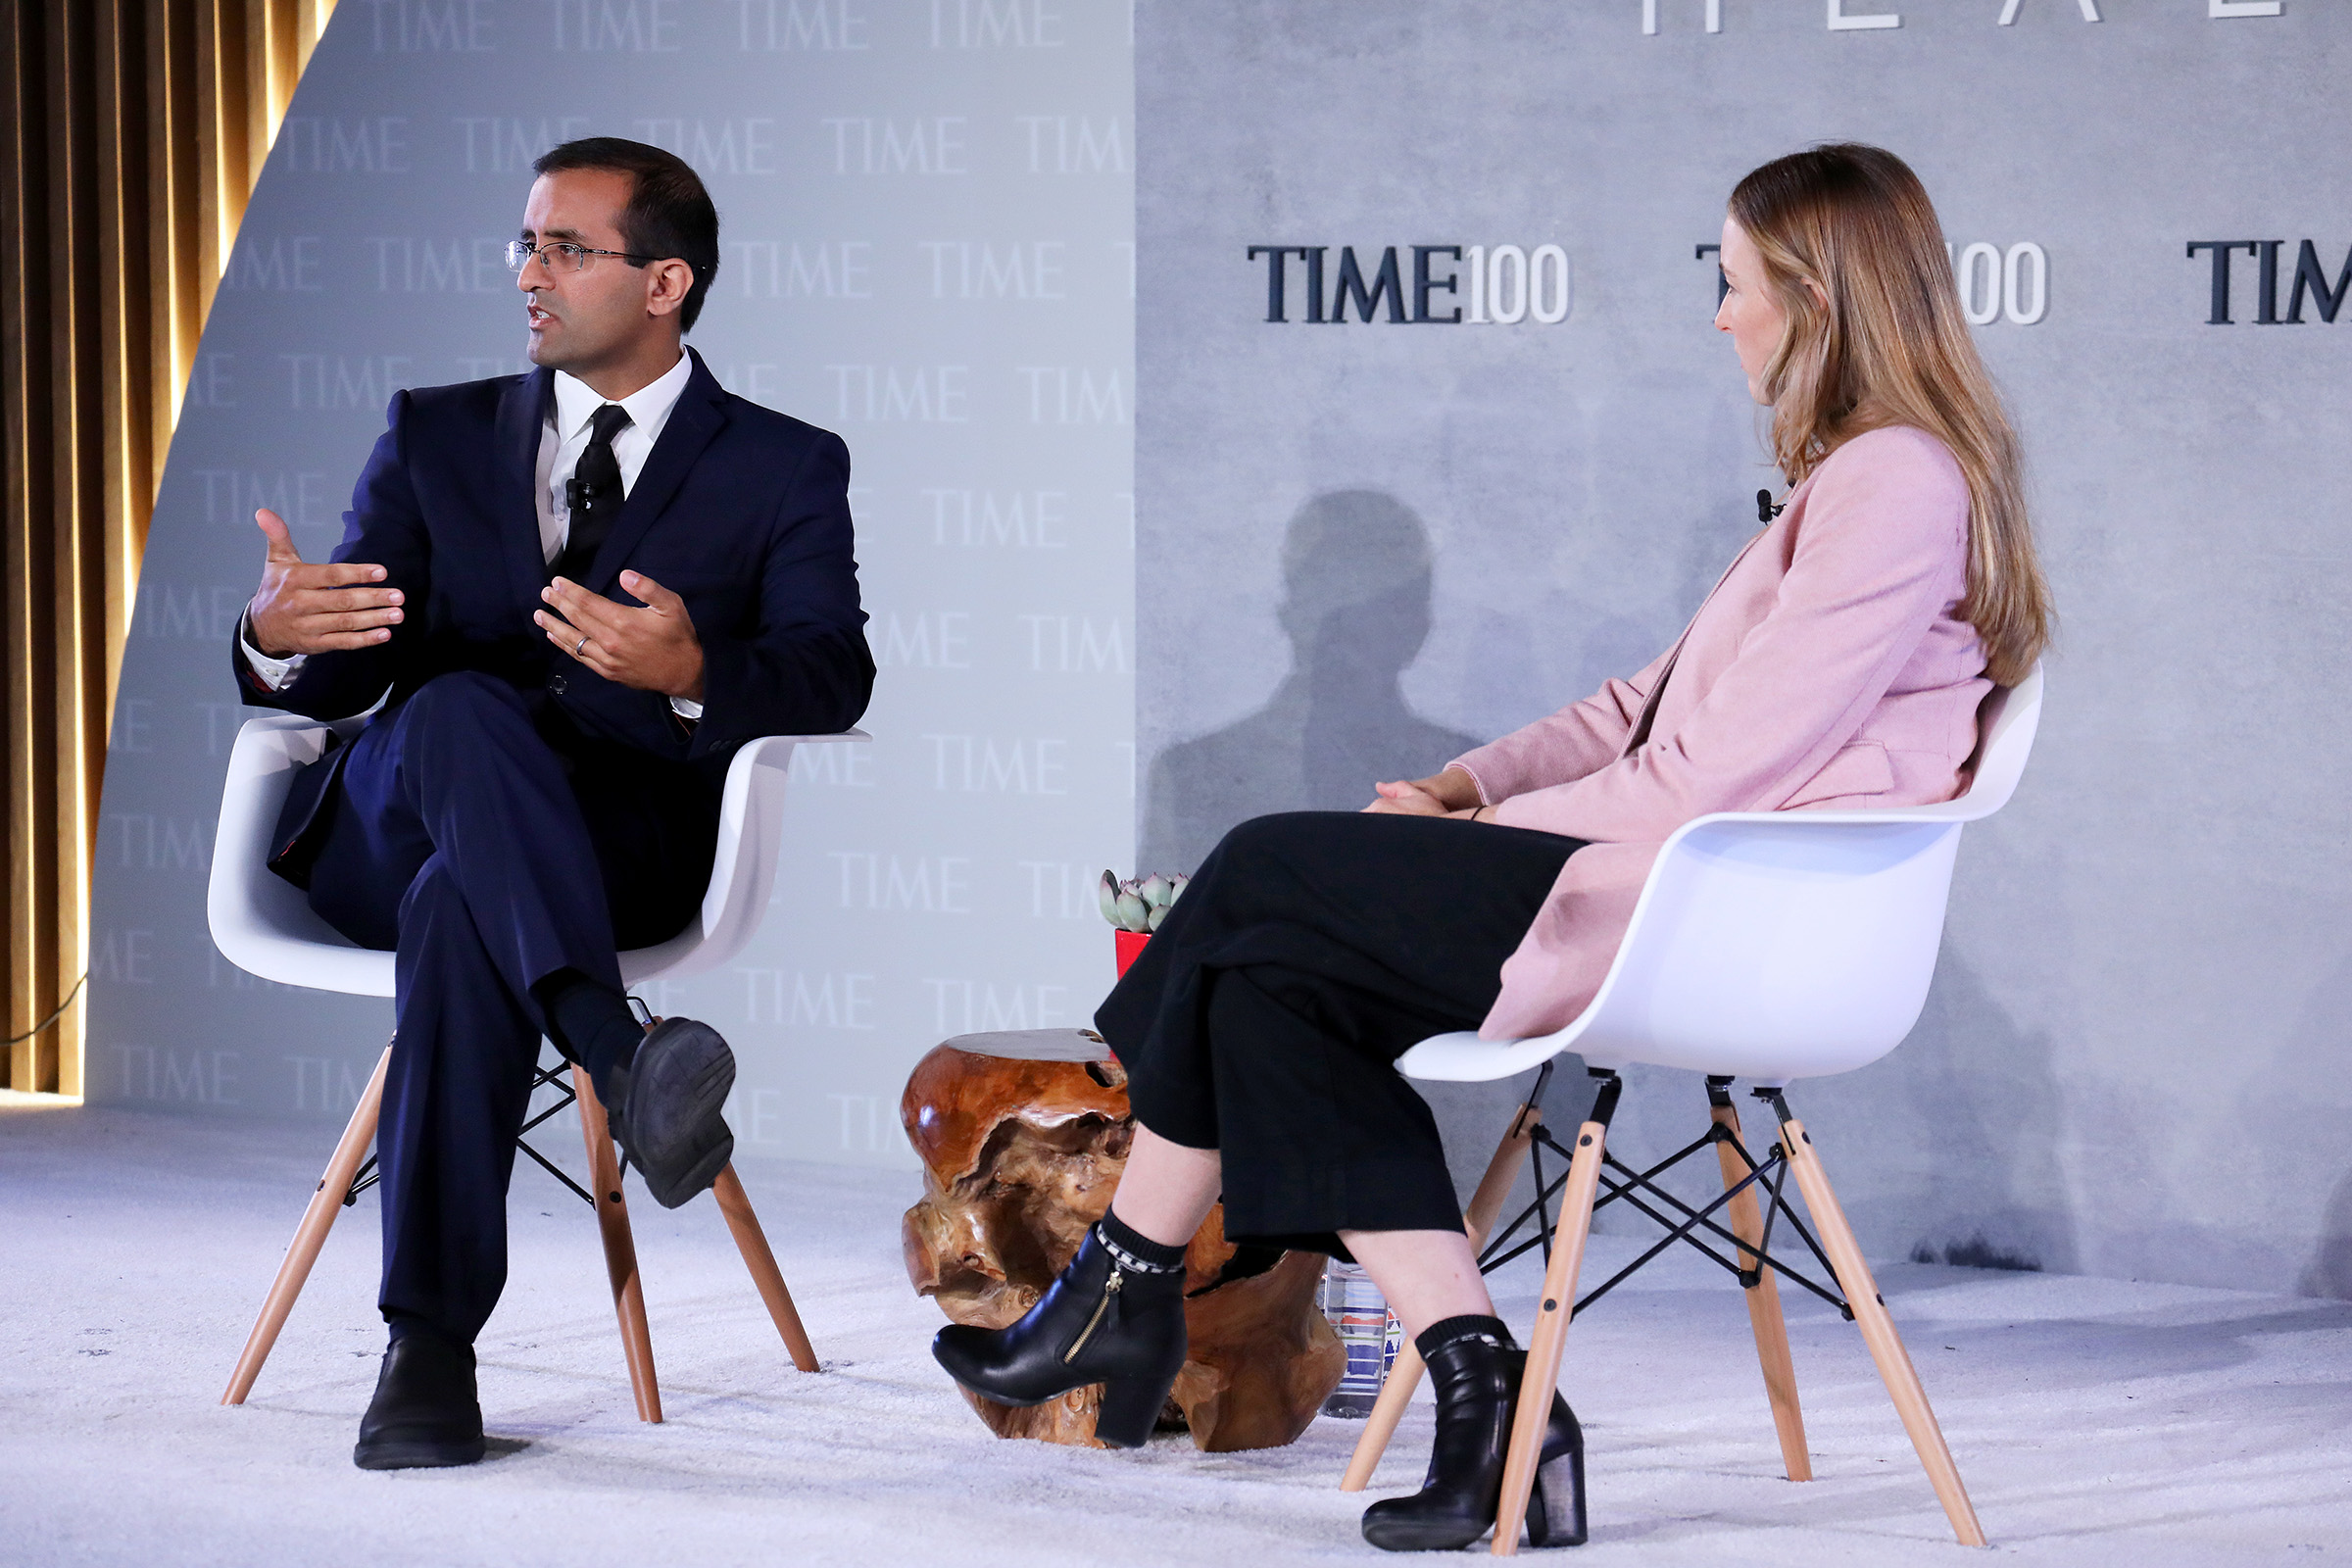 Co-Founder & CEO of Last Mile Health, Dr. Raj Panjabi (L), and Nation Editor at TIME Haley Sweetland Edwards speak onstage during the TIME 100 Health Summit at Pier 17 in New York City on Oct. 17, 2019.